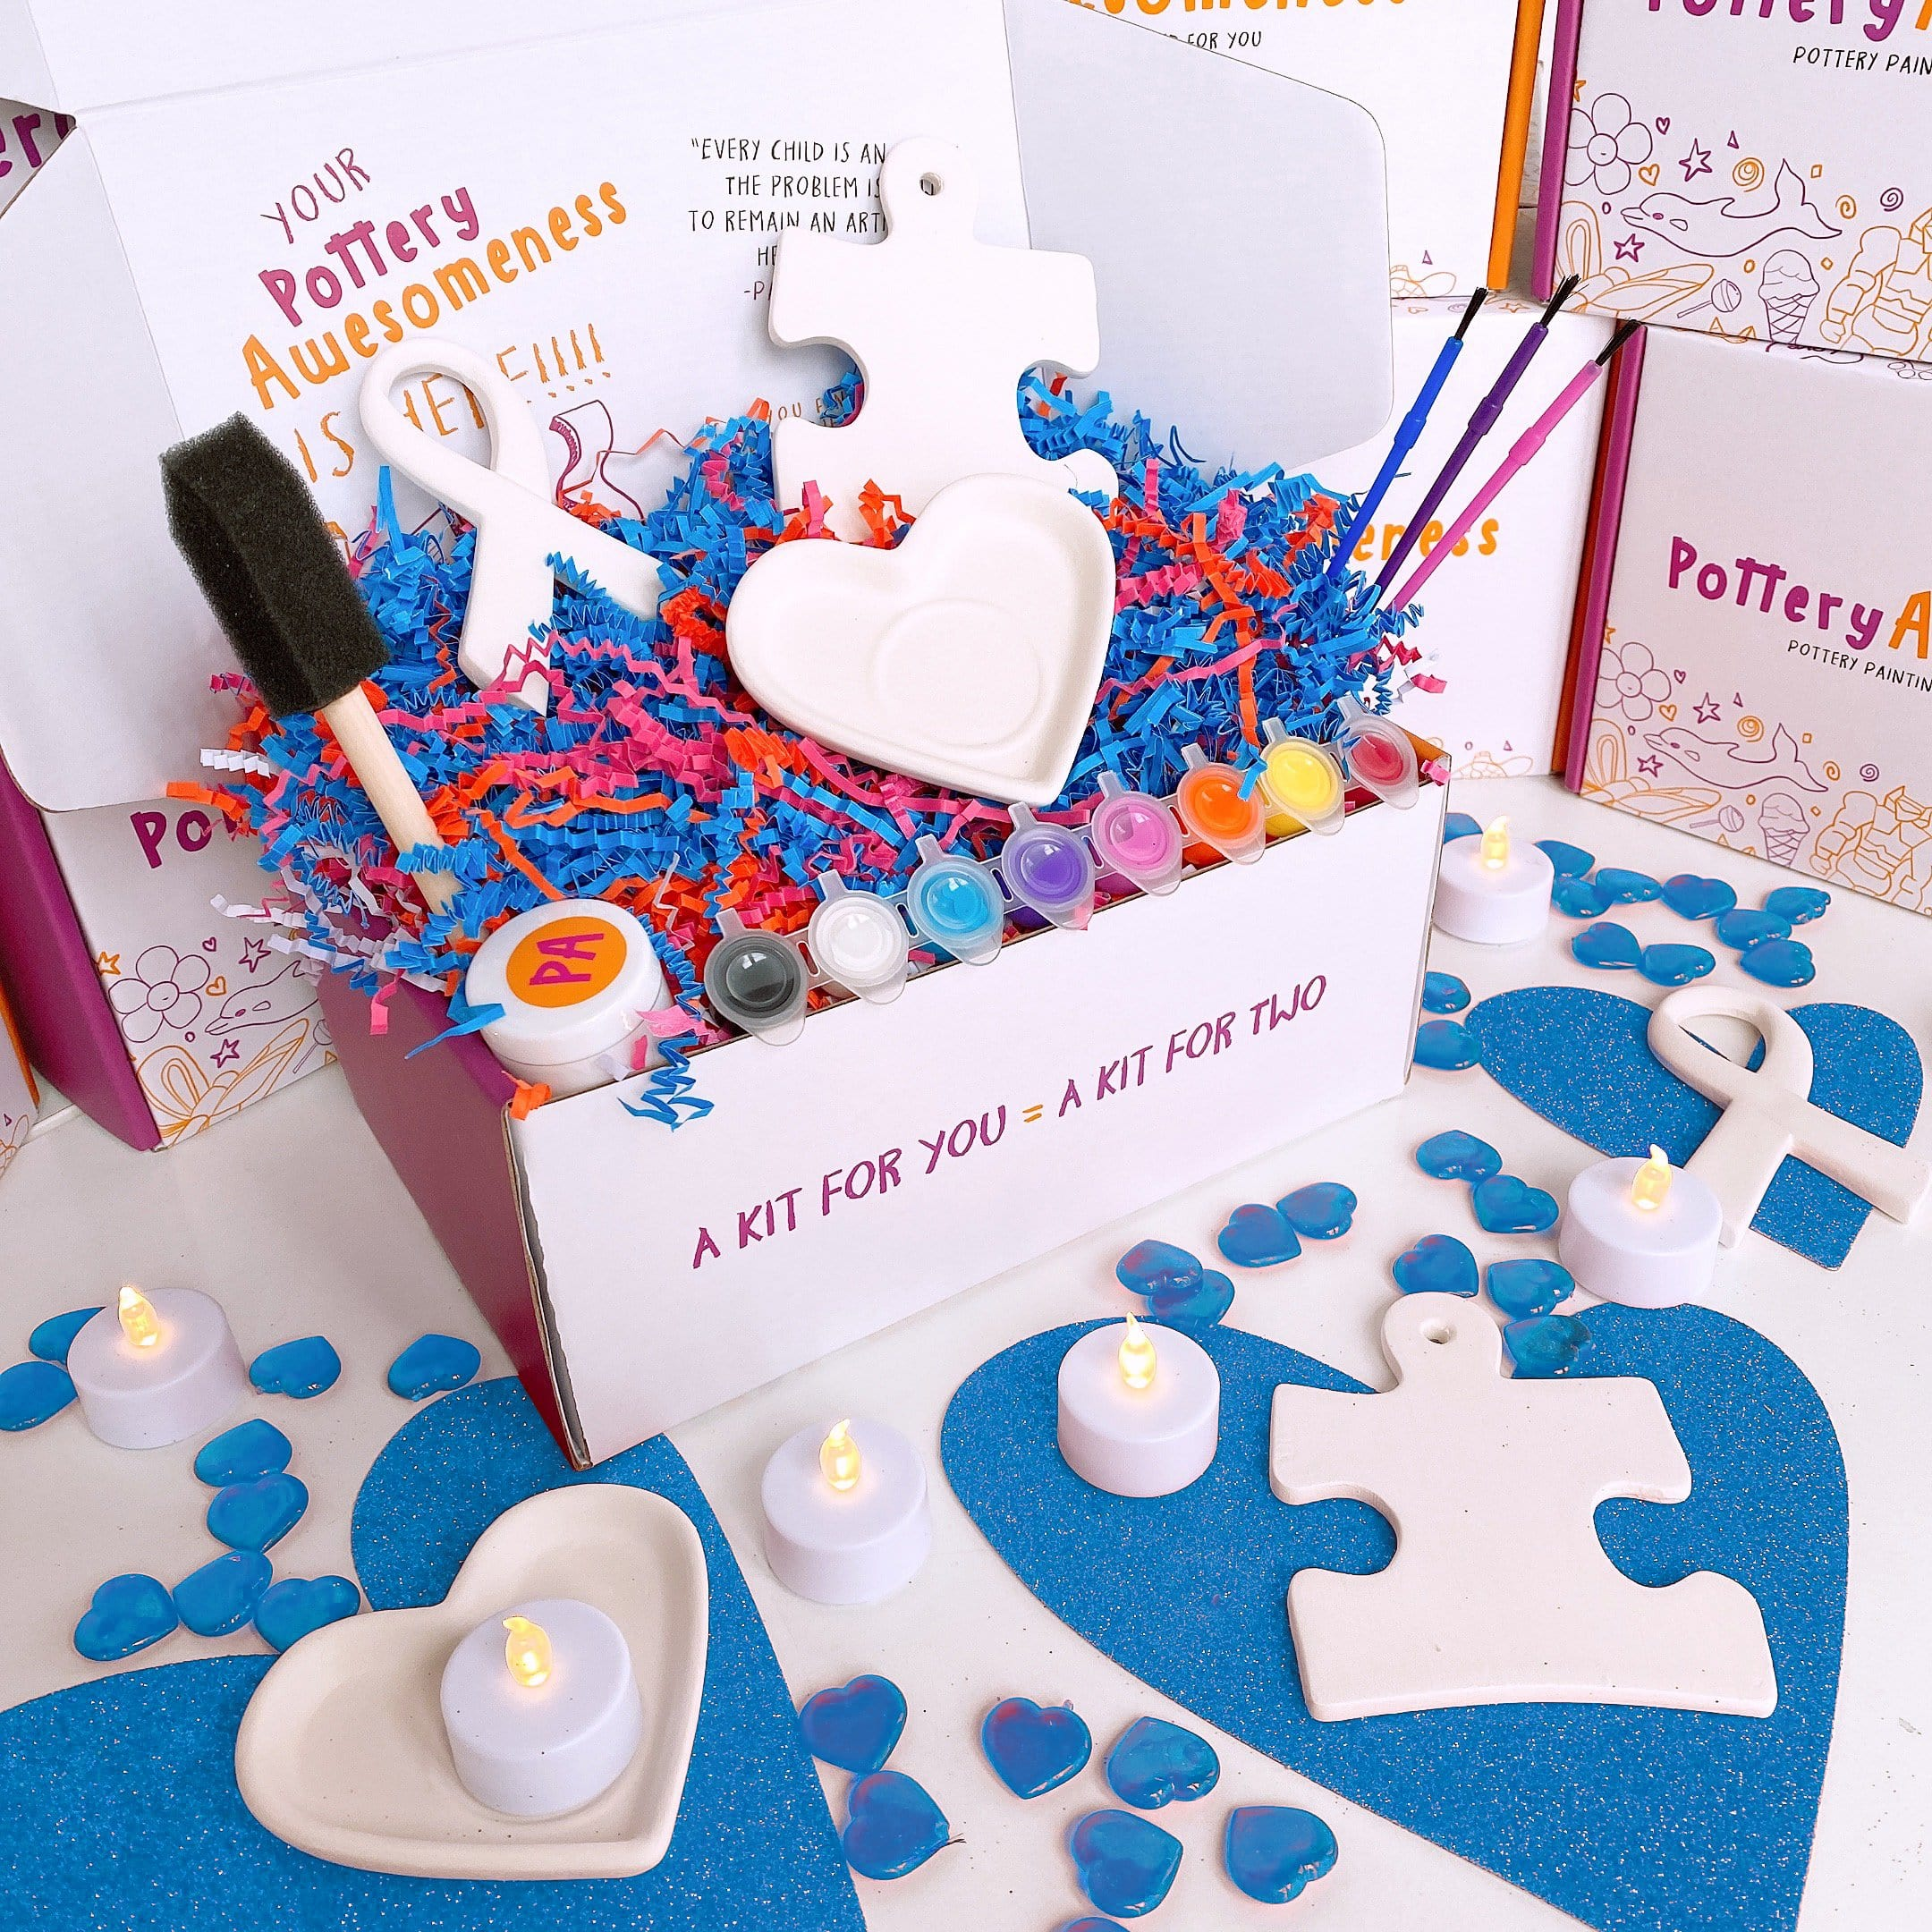 Light Up With Kindness Pottery Kit